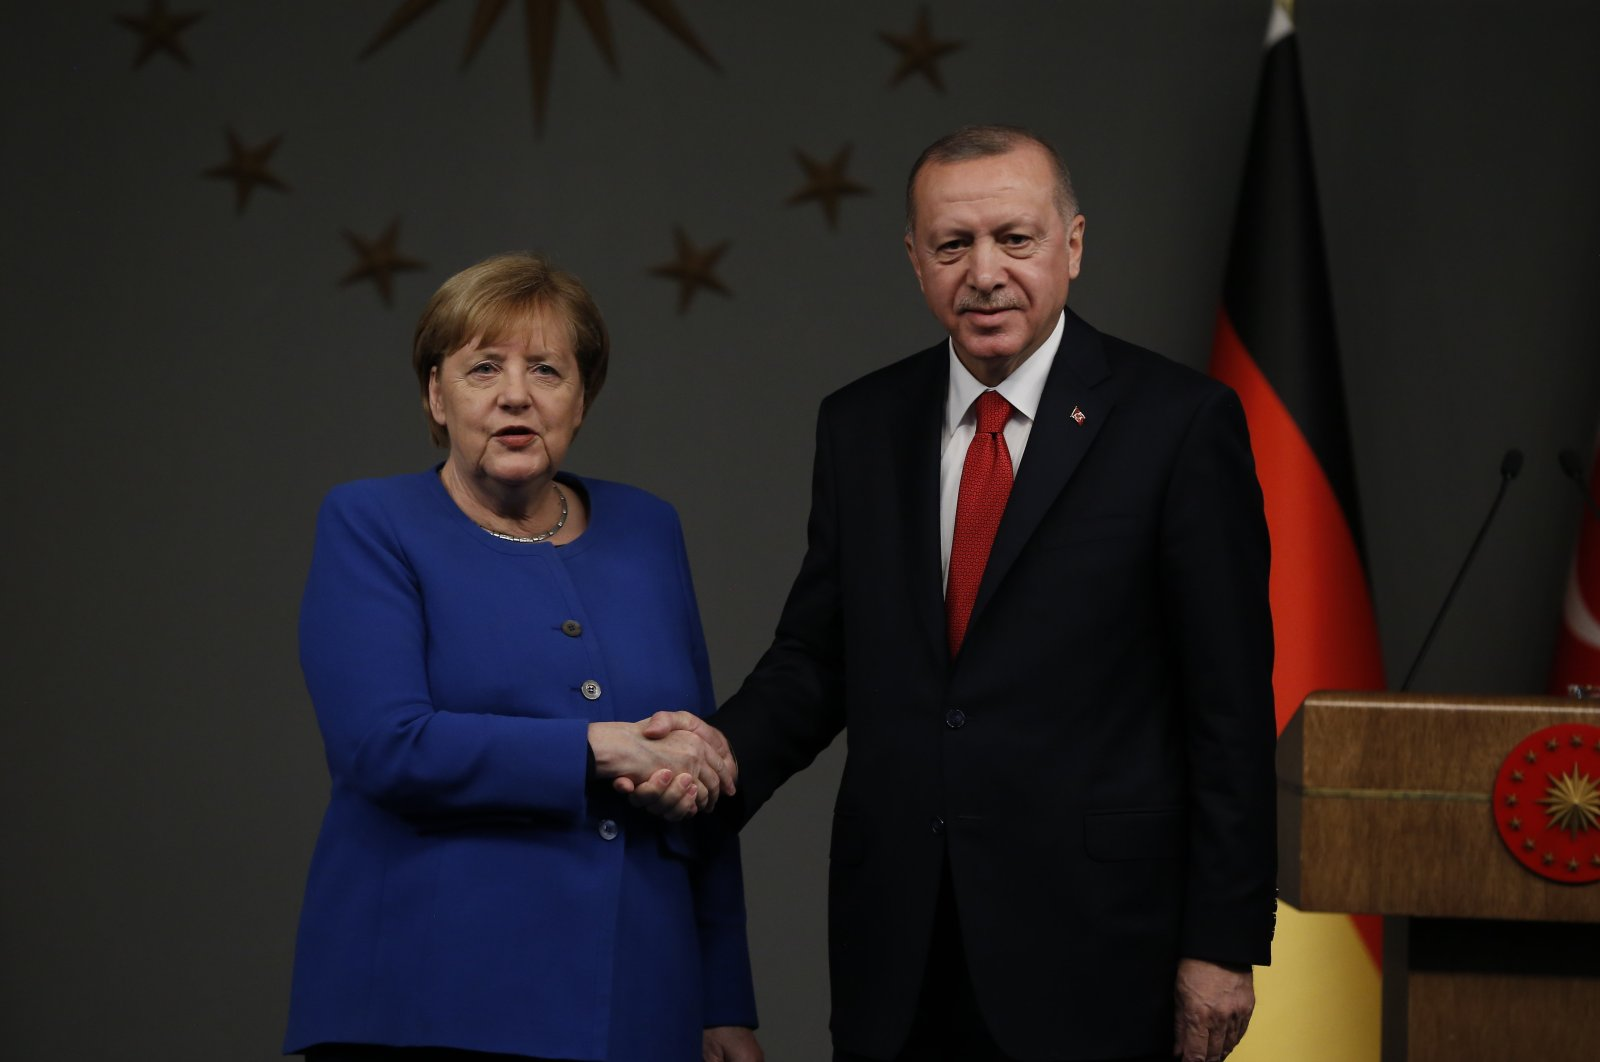 President Recep Tayyip Erdoğan (right) shakes hands with Germany's Chancellor Angela Merkel, (left) following their joint news conference after their meeting in Istanbul, Friday, Jan. 24, 2020. (AP Photo)